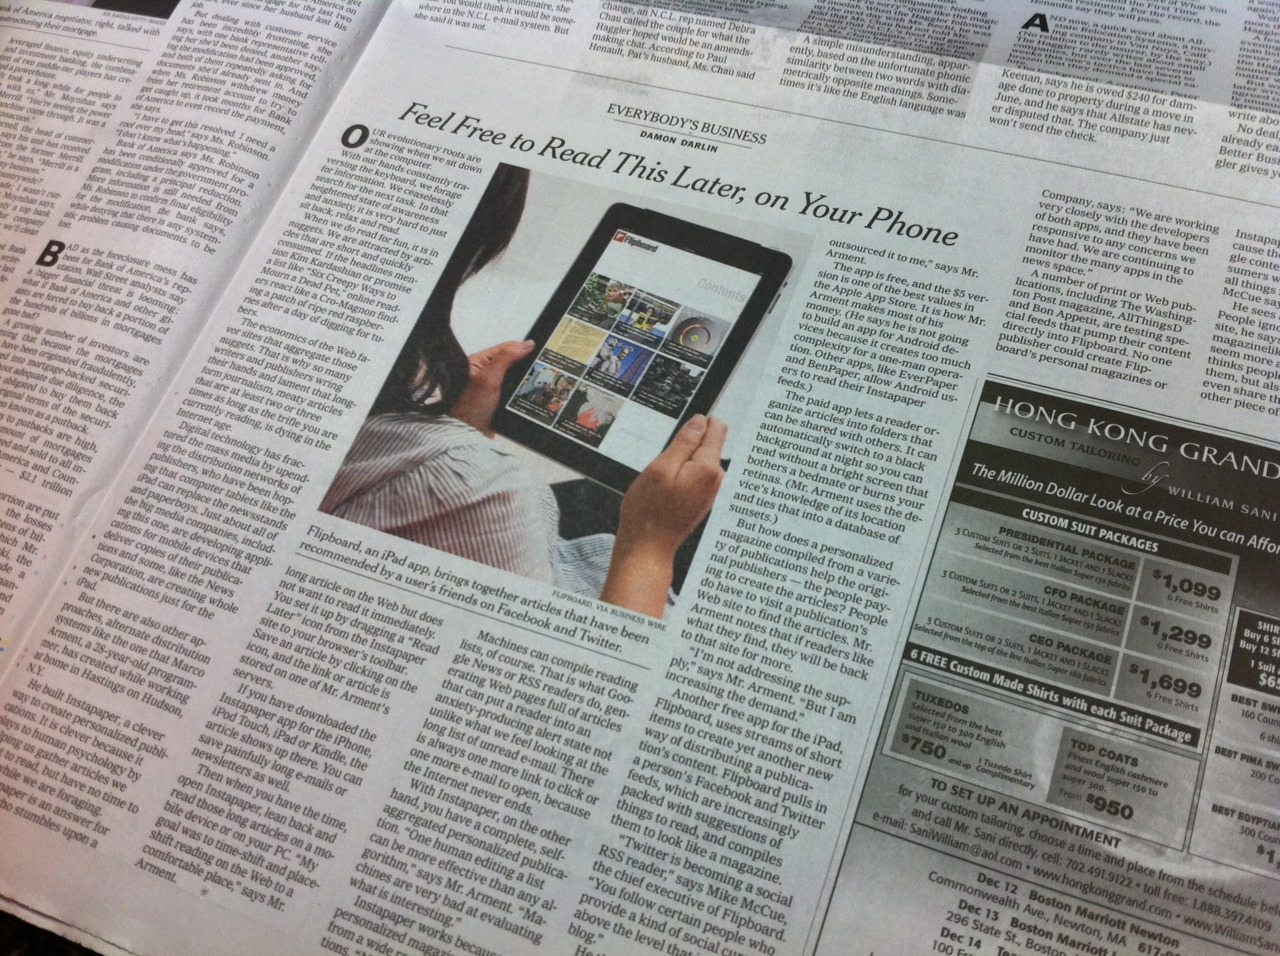 I'm so proud of you  honey!  The Sunday Times is kind of a big deal.   Side note: After reading the article in print, I had to wash the newsprint smudges off my hands. I should have used  Instapaper .     instapaper :       The New York Times: Feel Free to Read This Later, on Your Phone     Instapaper was featured in today's print edition of  The New York Times  in this Sunday Business article. I'm incredibly honored. This is getting framed and hung on the wall in the Instapaper office.